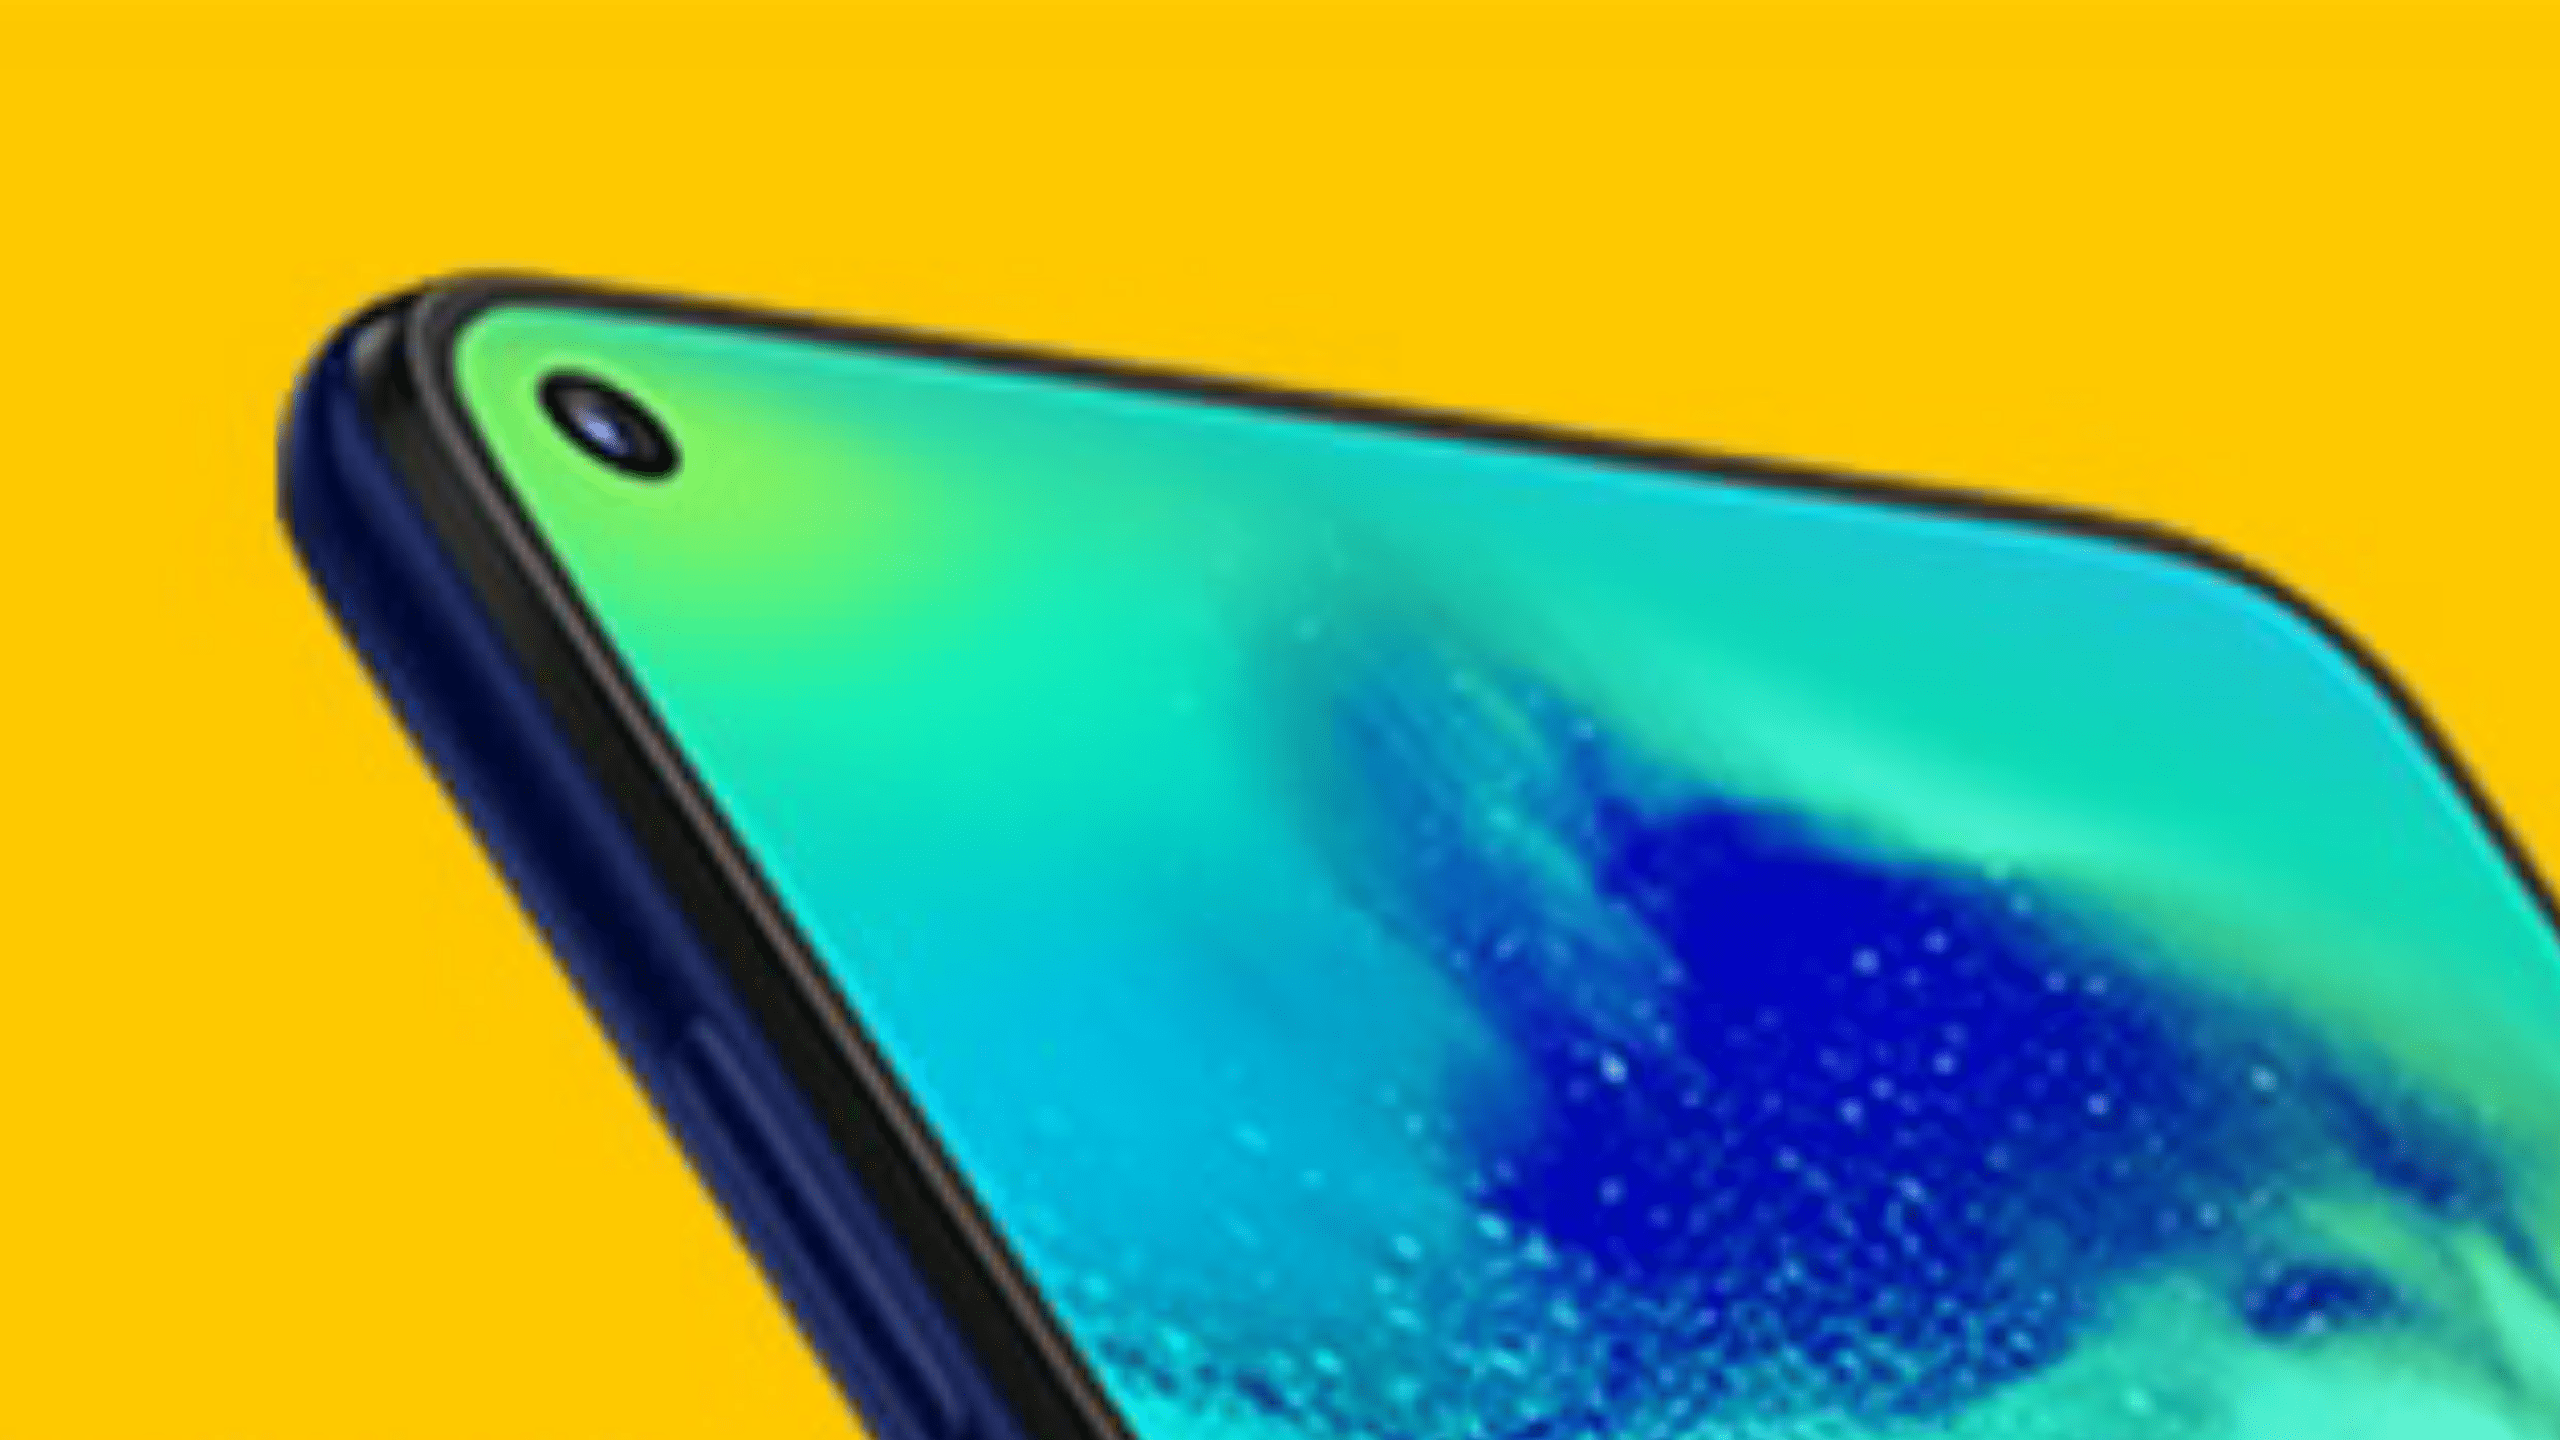 Samsung galaxy M40 will launch in India on June 11 with Infinity O